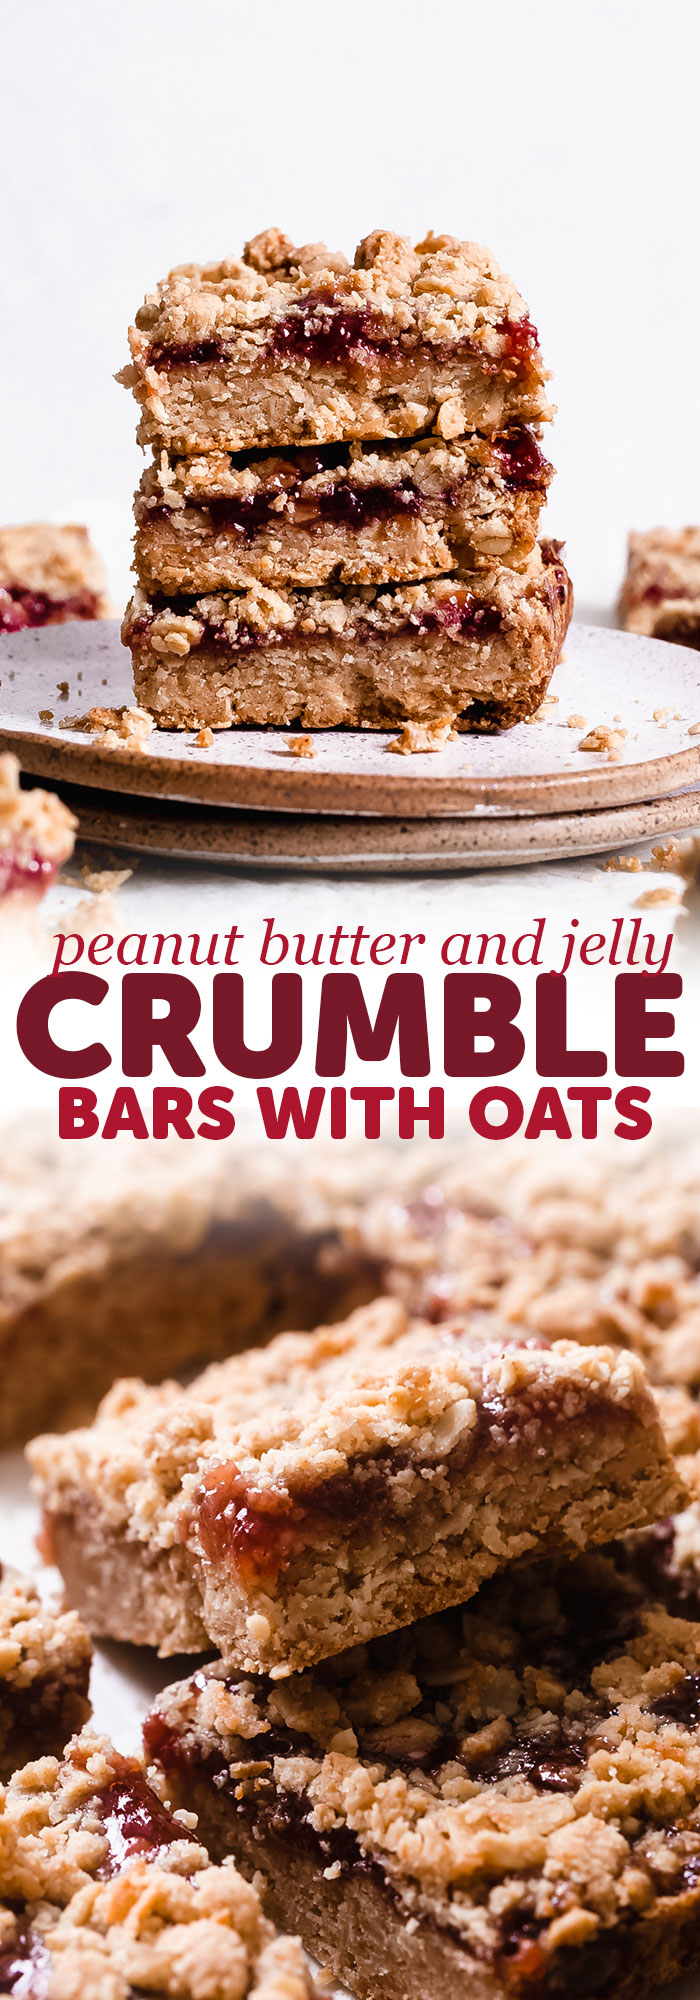 Peanut Butter and Jelly Oat Bars - A tender and buttery peanut butter laced oat crust, topped with your favorite jam and peanut butter and oat crumble. So yummy and so easy to prep! #crumblebars #peanutbutterbars #bars #oatmealbars #peanutbutterjelly #oatbars #oatcrumblebars | Littlespicejar.com